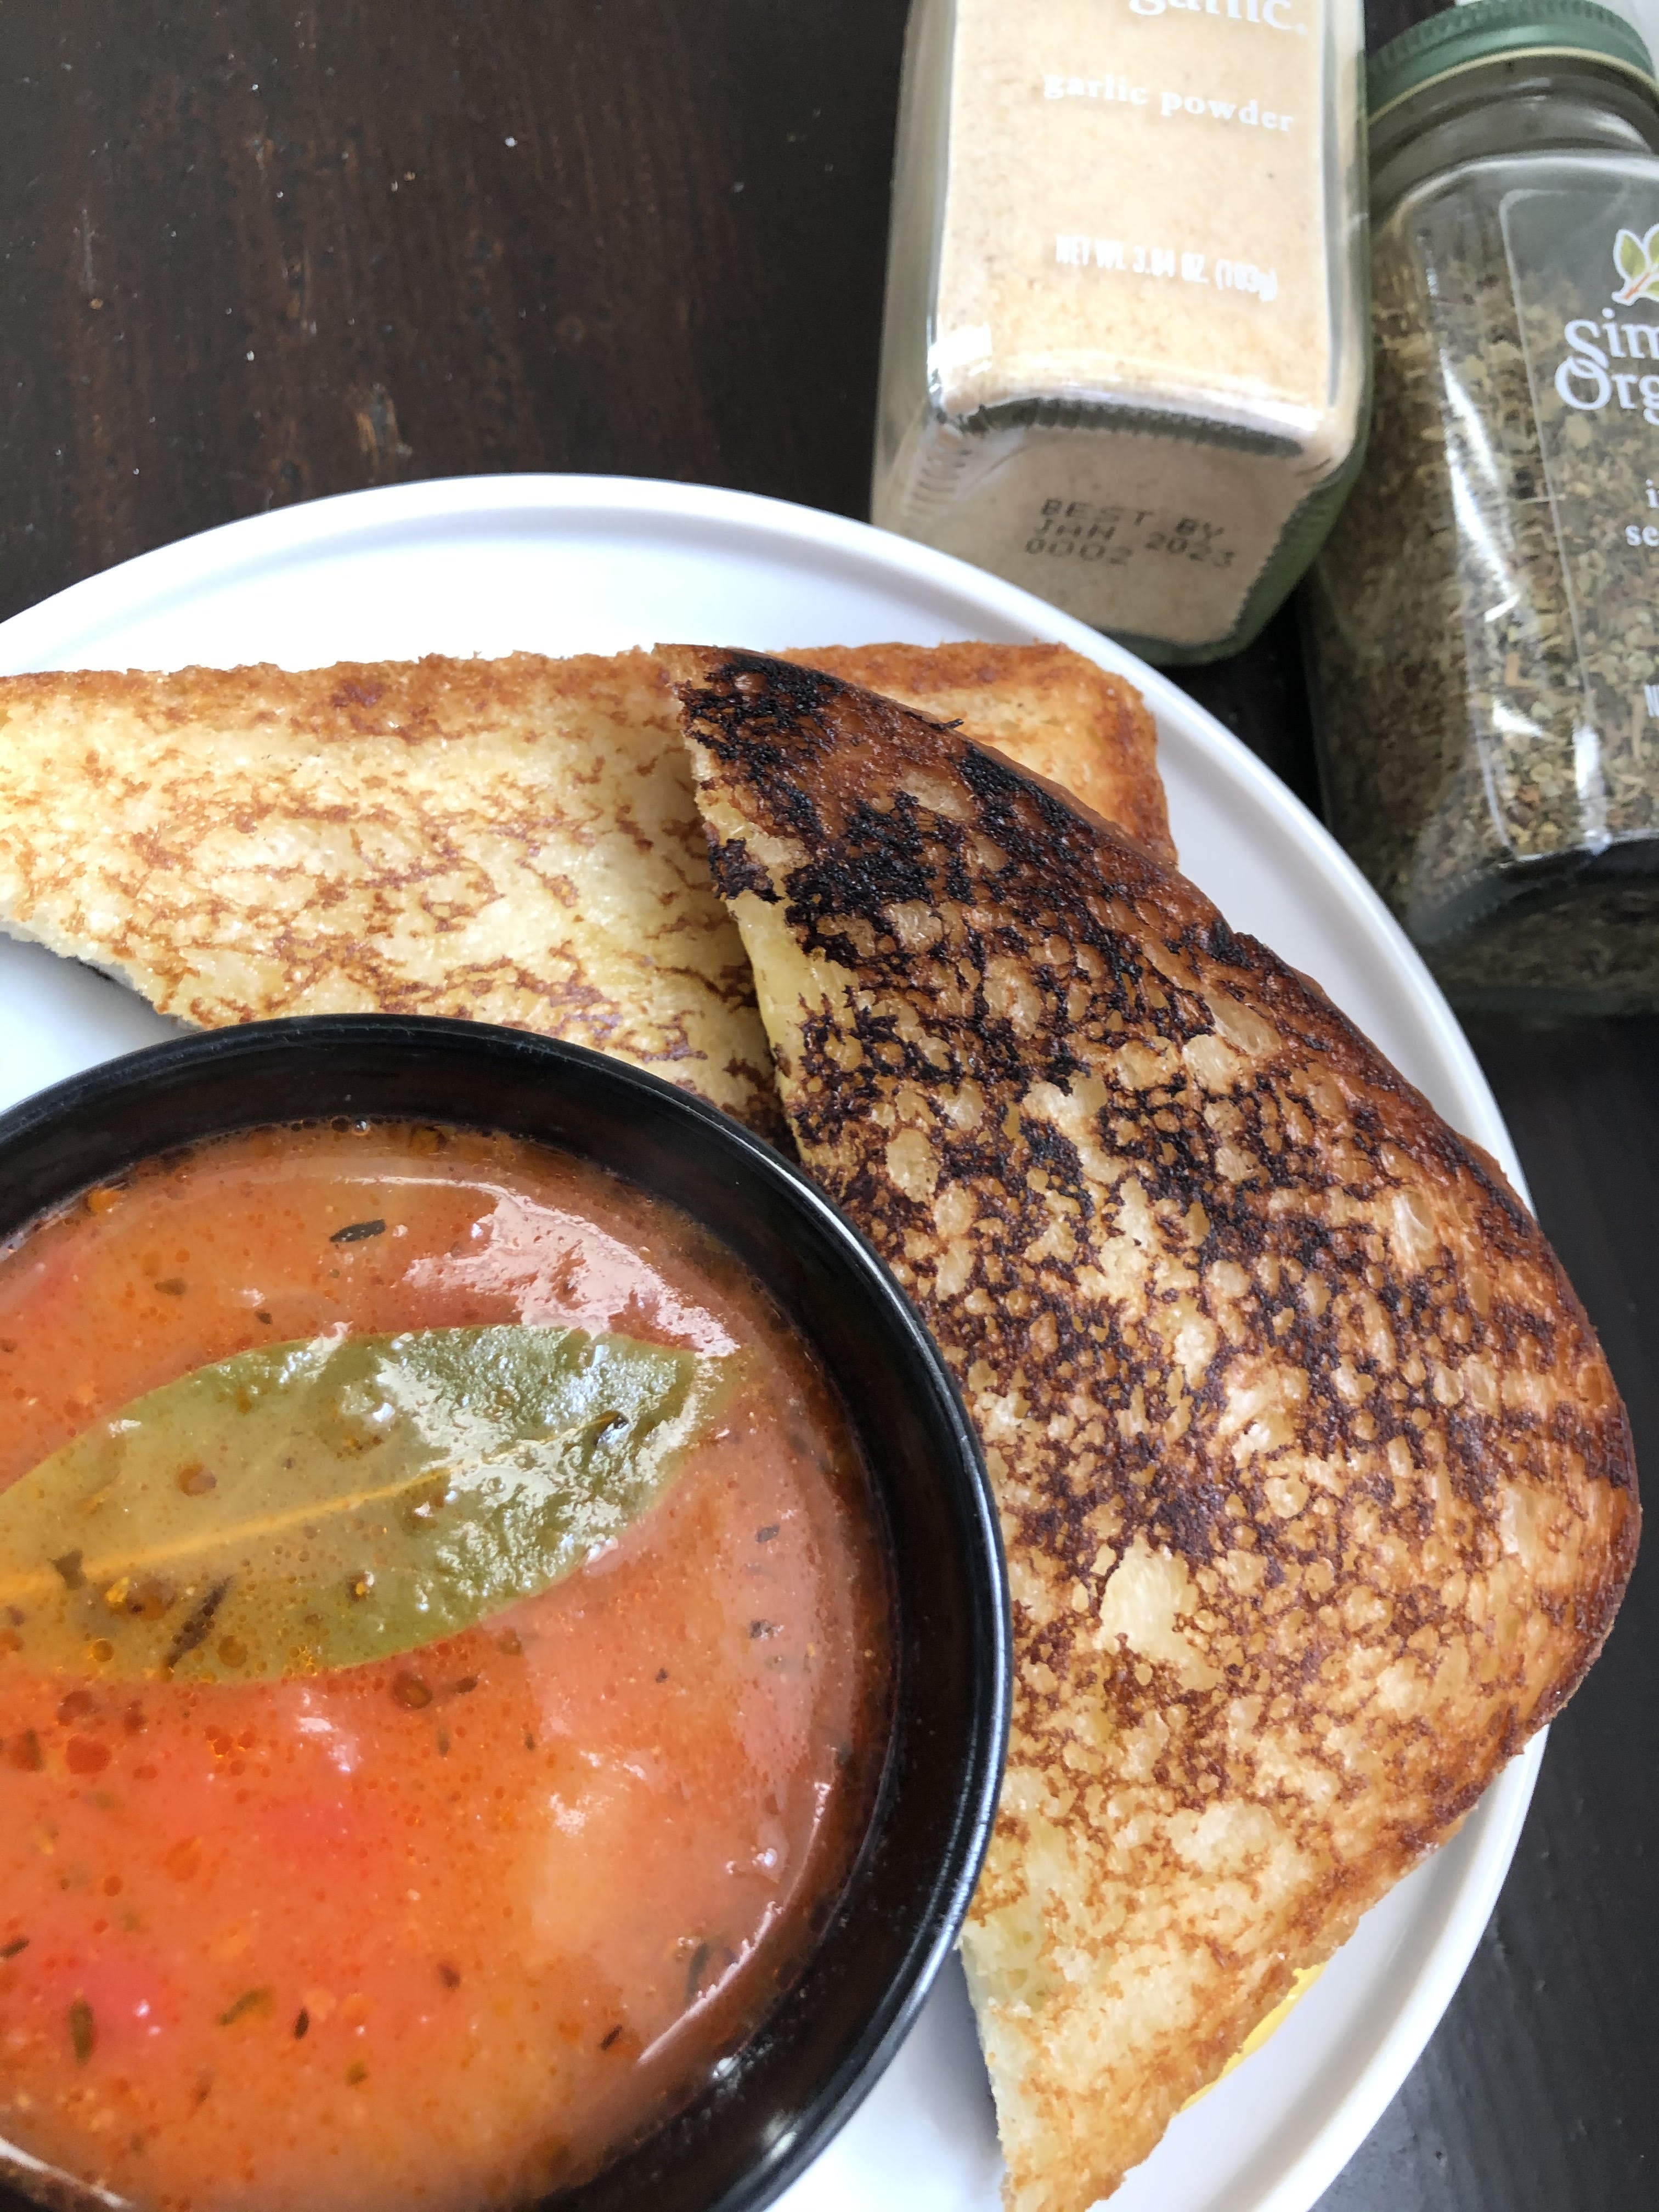 Homemade tomato soup & grilled cheese sandwish